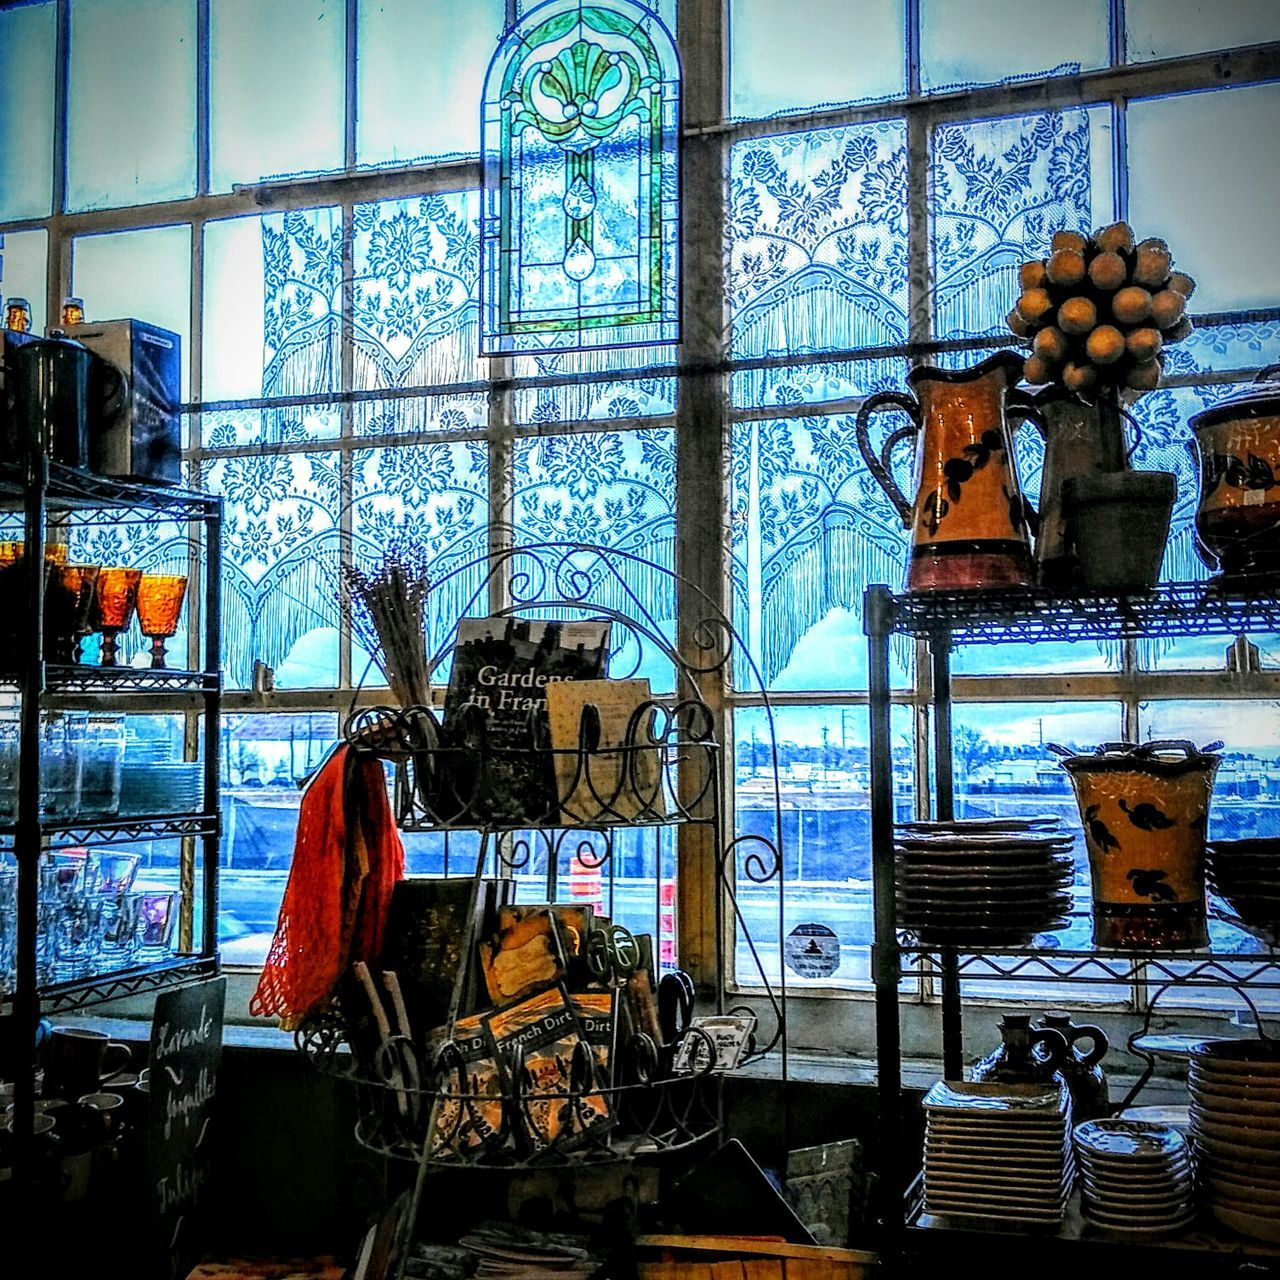 Shop European  french Italian kitchen Enjoying Life Lace Curtain products Supplies Beautiful Store Colorado Life shelves Glasses longmont colorado Happy Shopping Things I Like